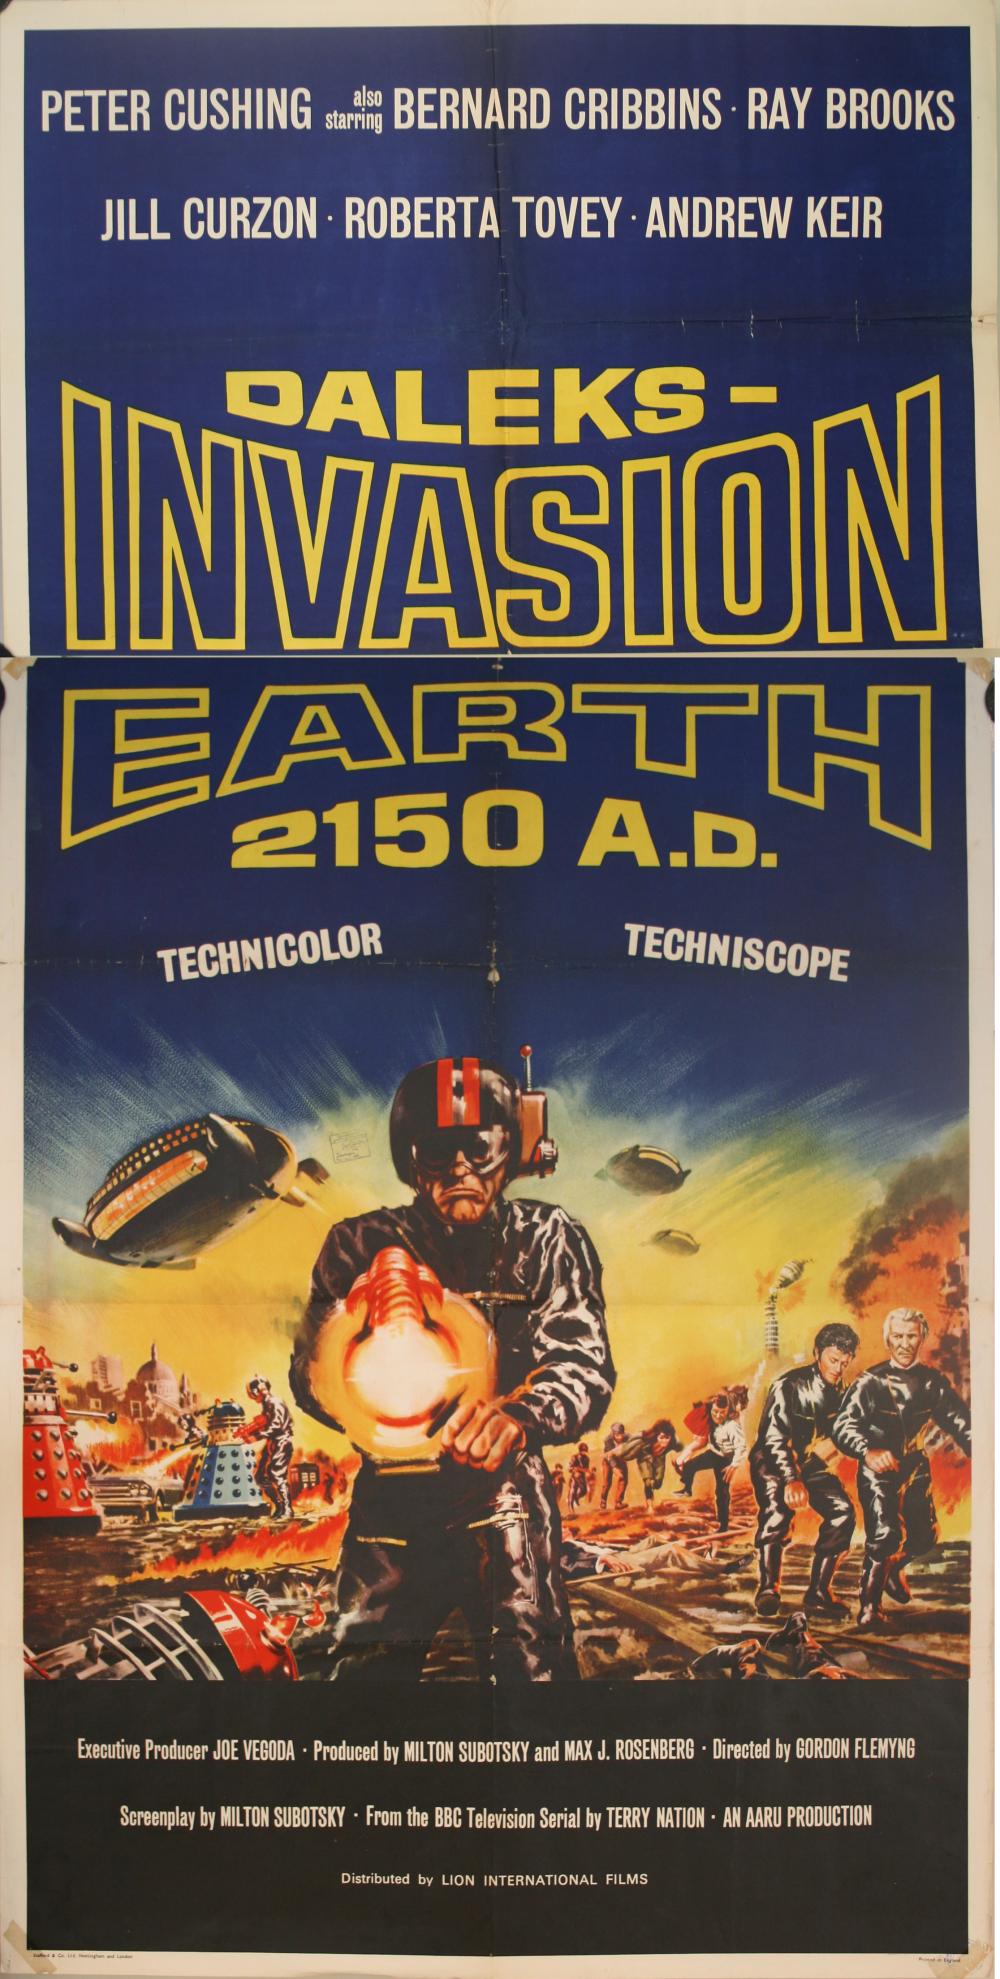 UK Three-Sheet Poster